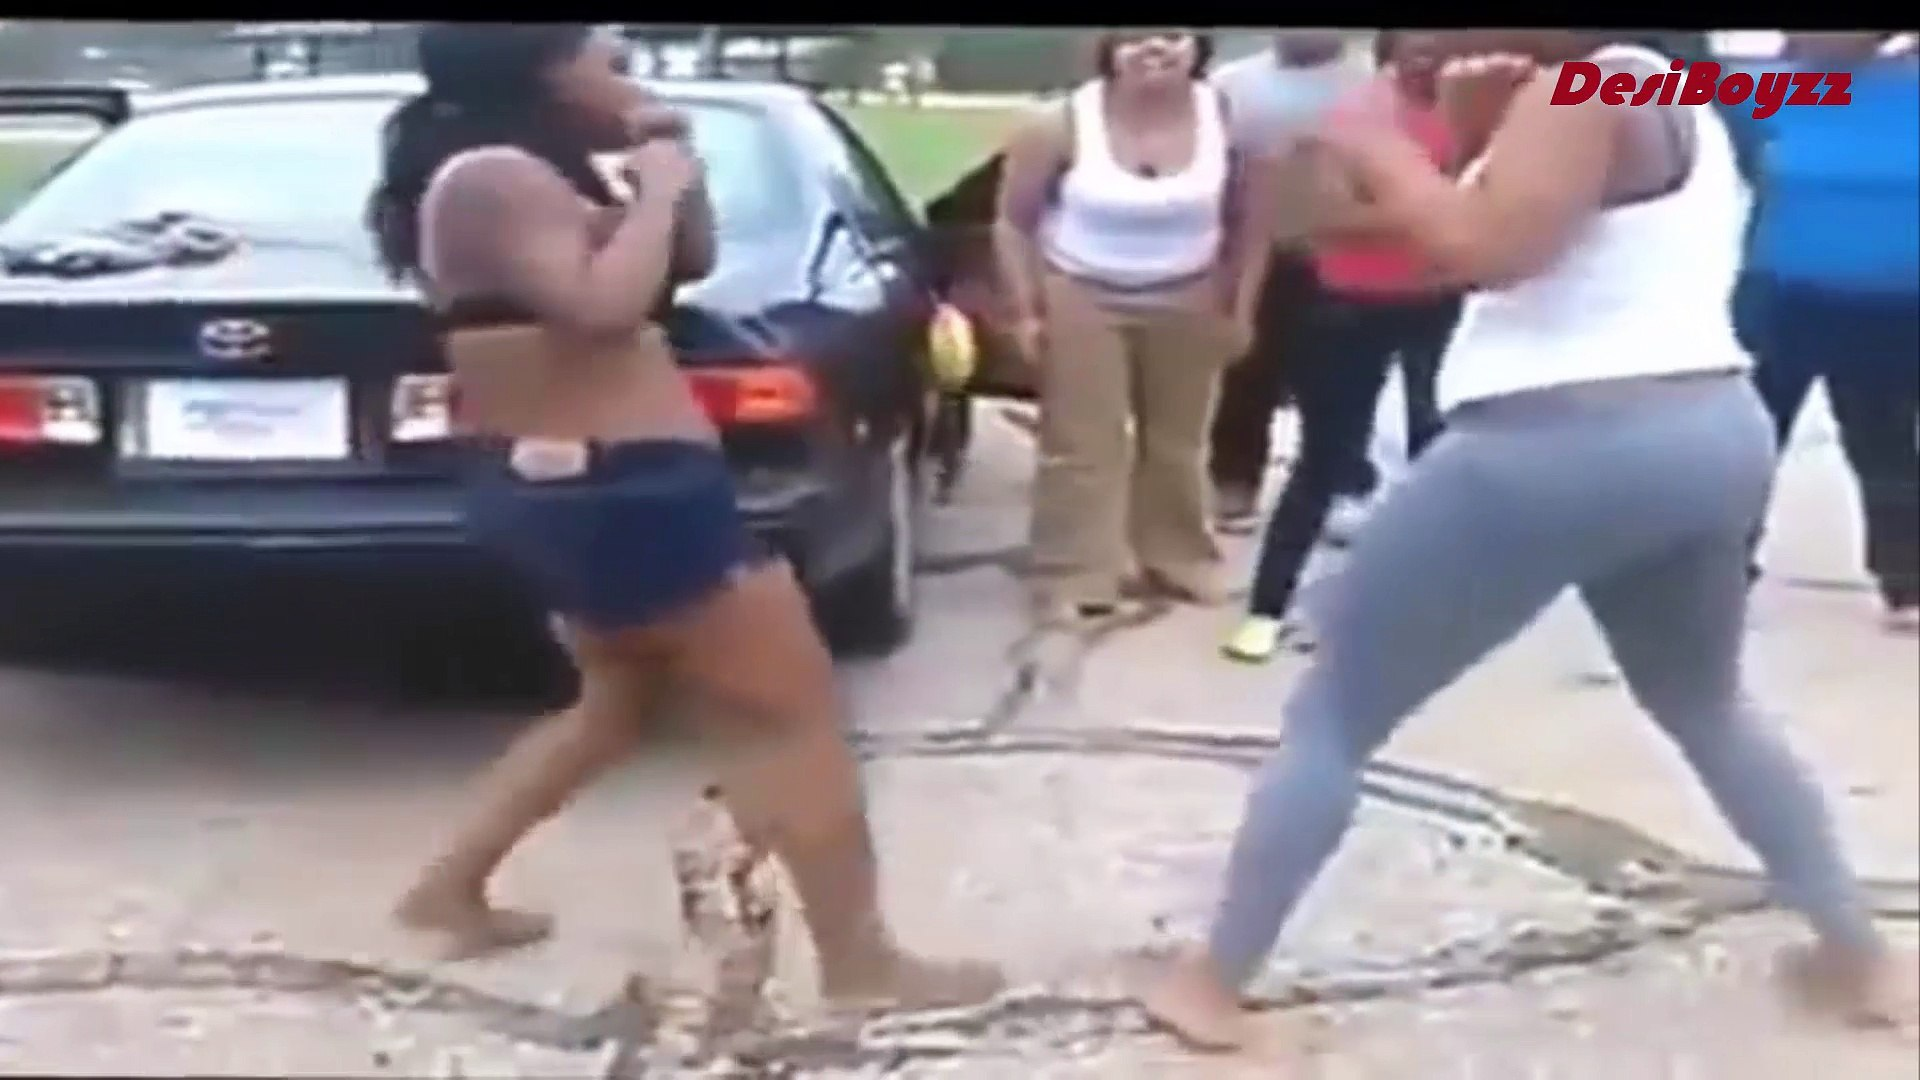 Crazy Girls Street Fighting Videos 2016 - sexy girl - sexy woman. - Dailymotion